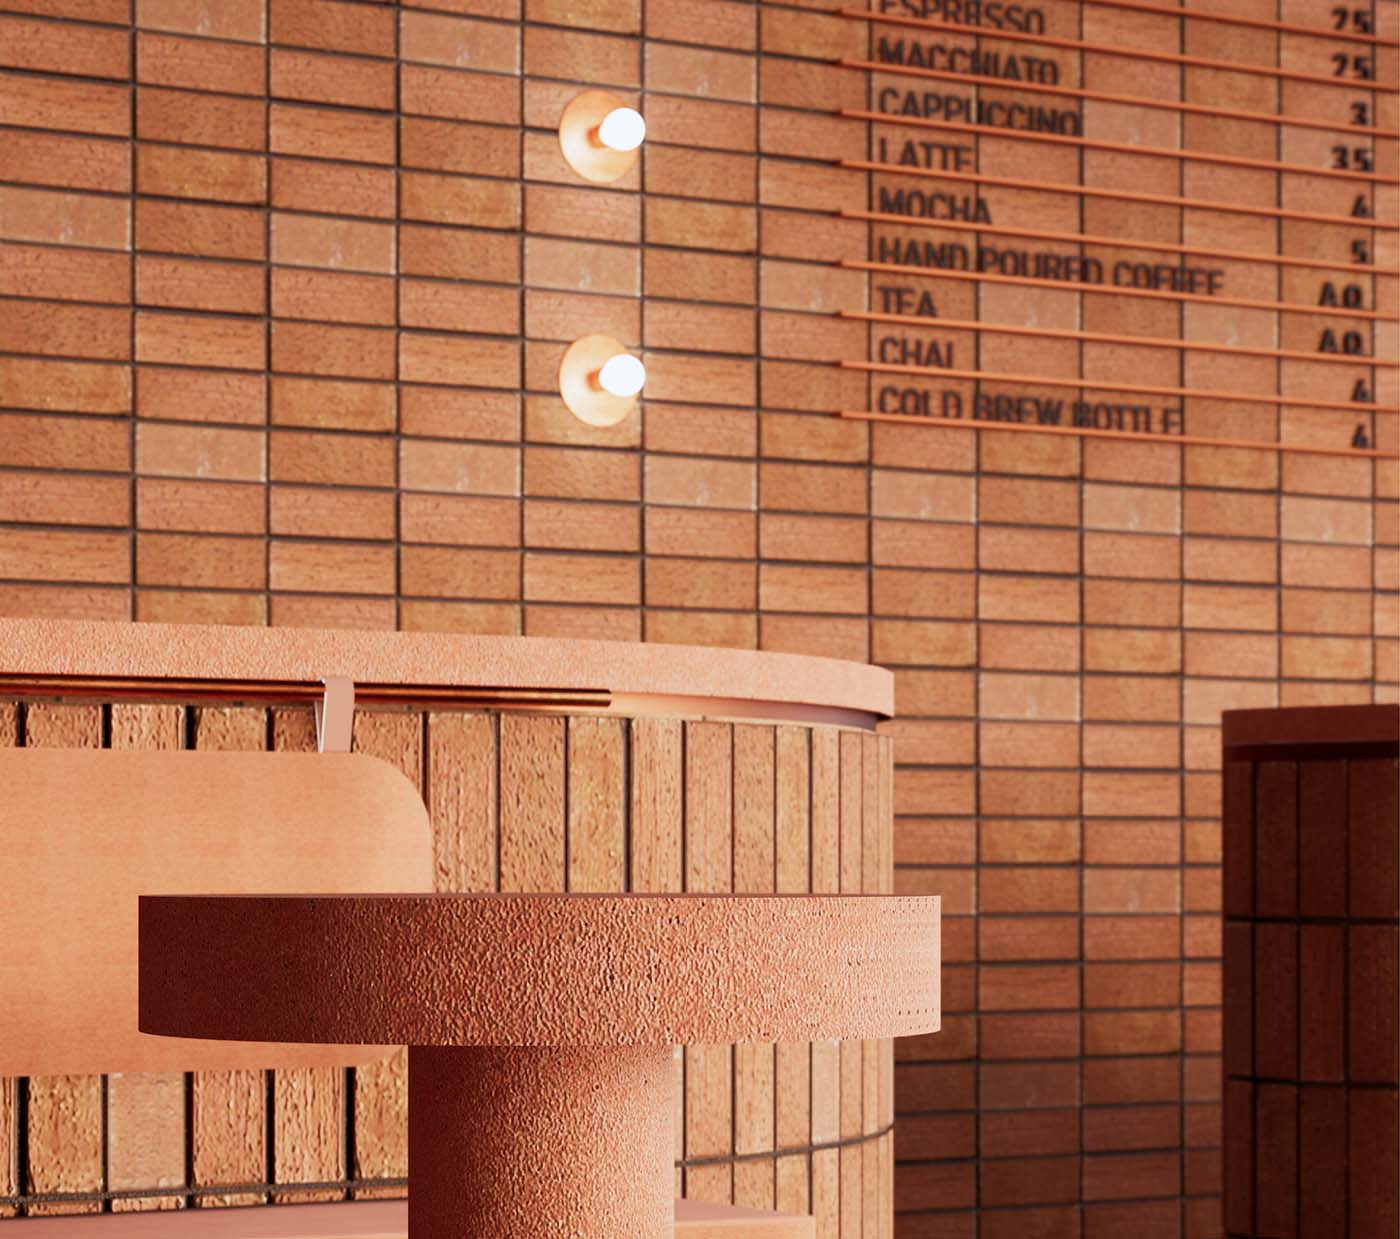 Coffee bar close-up detail using a brick design as an extension of the exterior architecture.